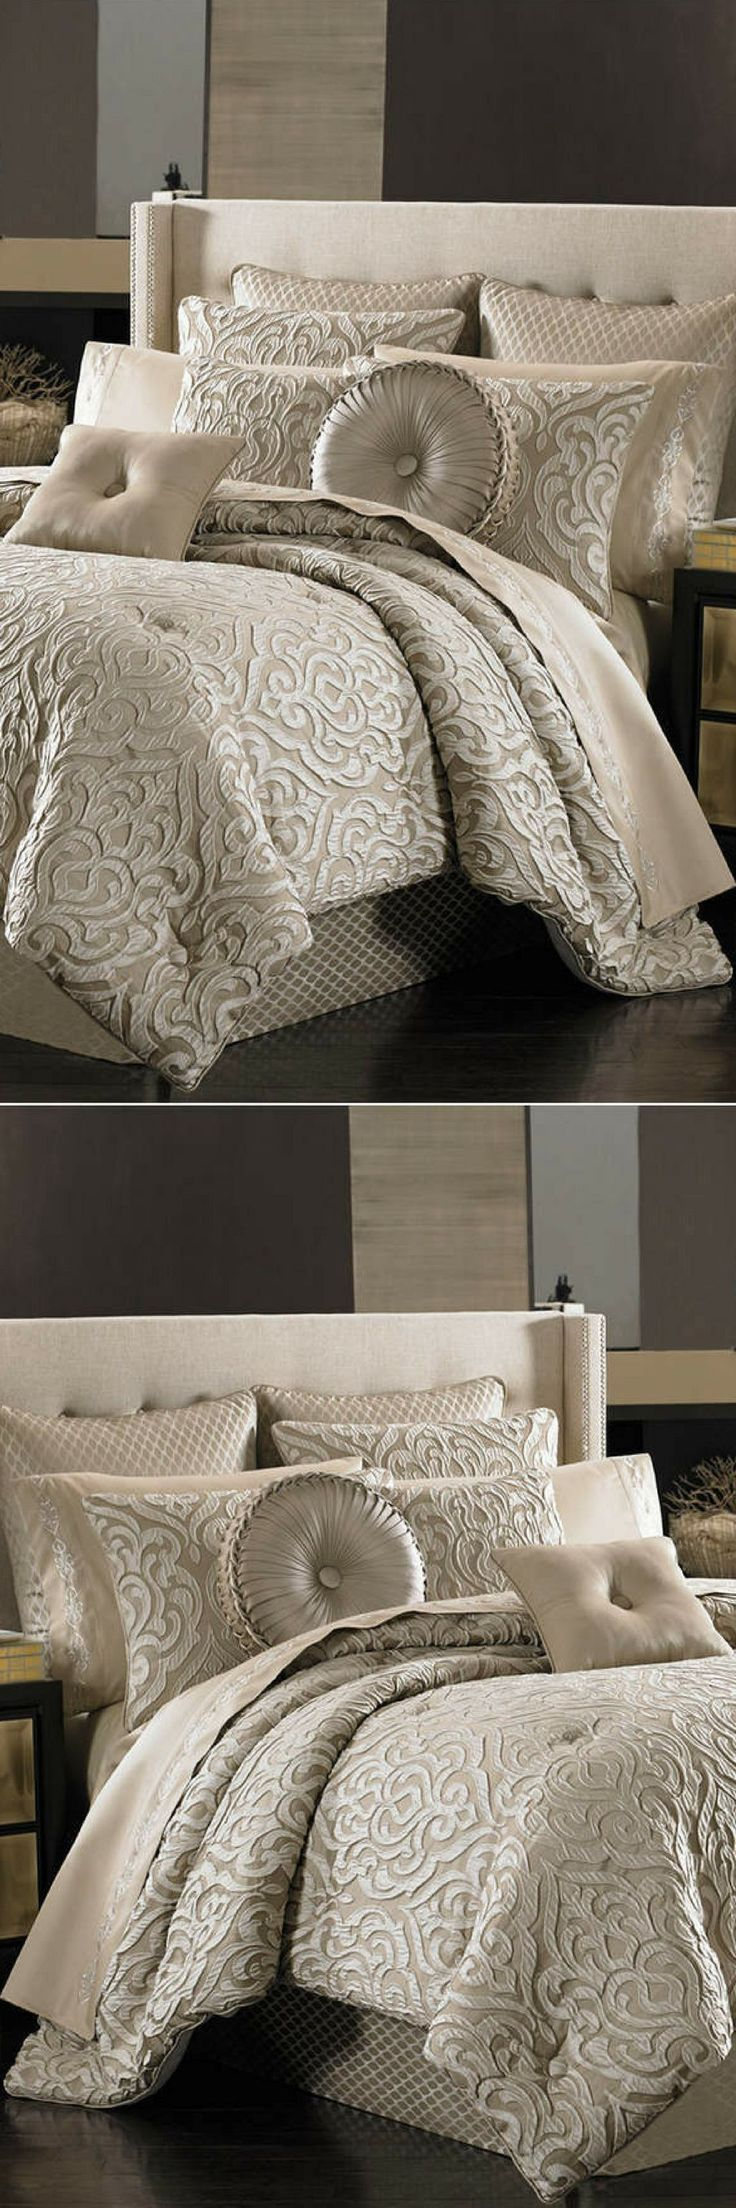 Traditional  meets modern in the Astoria comforter set from J Queen New York  features large scale damask embellishments that create a unique three  dimensional effect, while the bedskirt offers a diamond coordinate  pattern. Home decor ideas, bedroom decor ideas, bed, bedding, blanket #homedecorideas #ad #bedroomideas #bedroomdecor